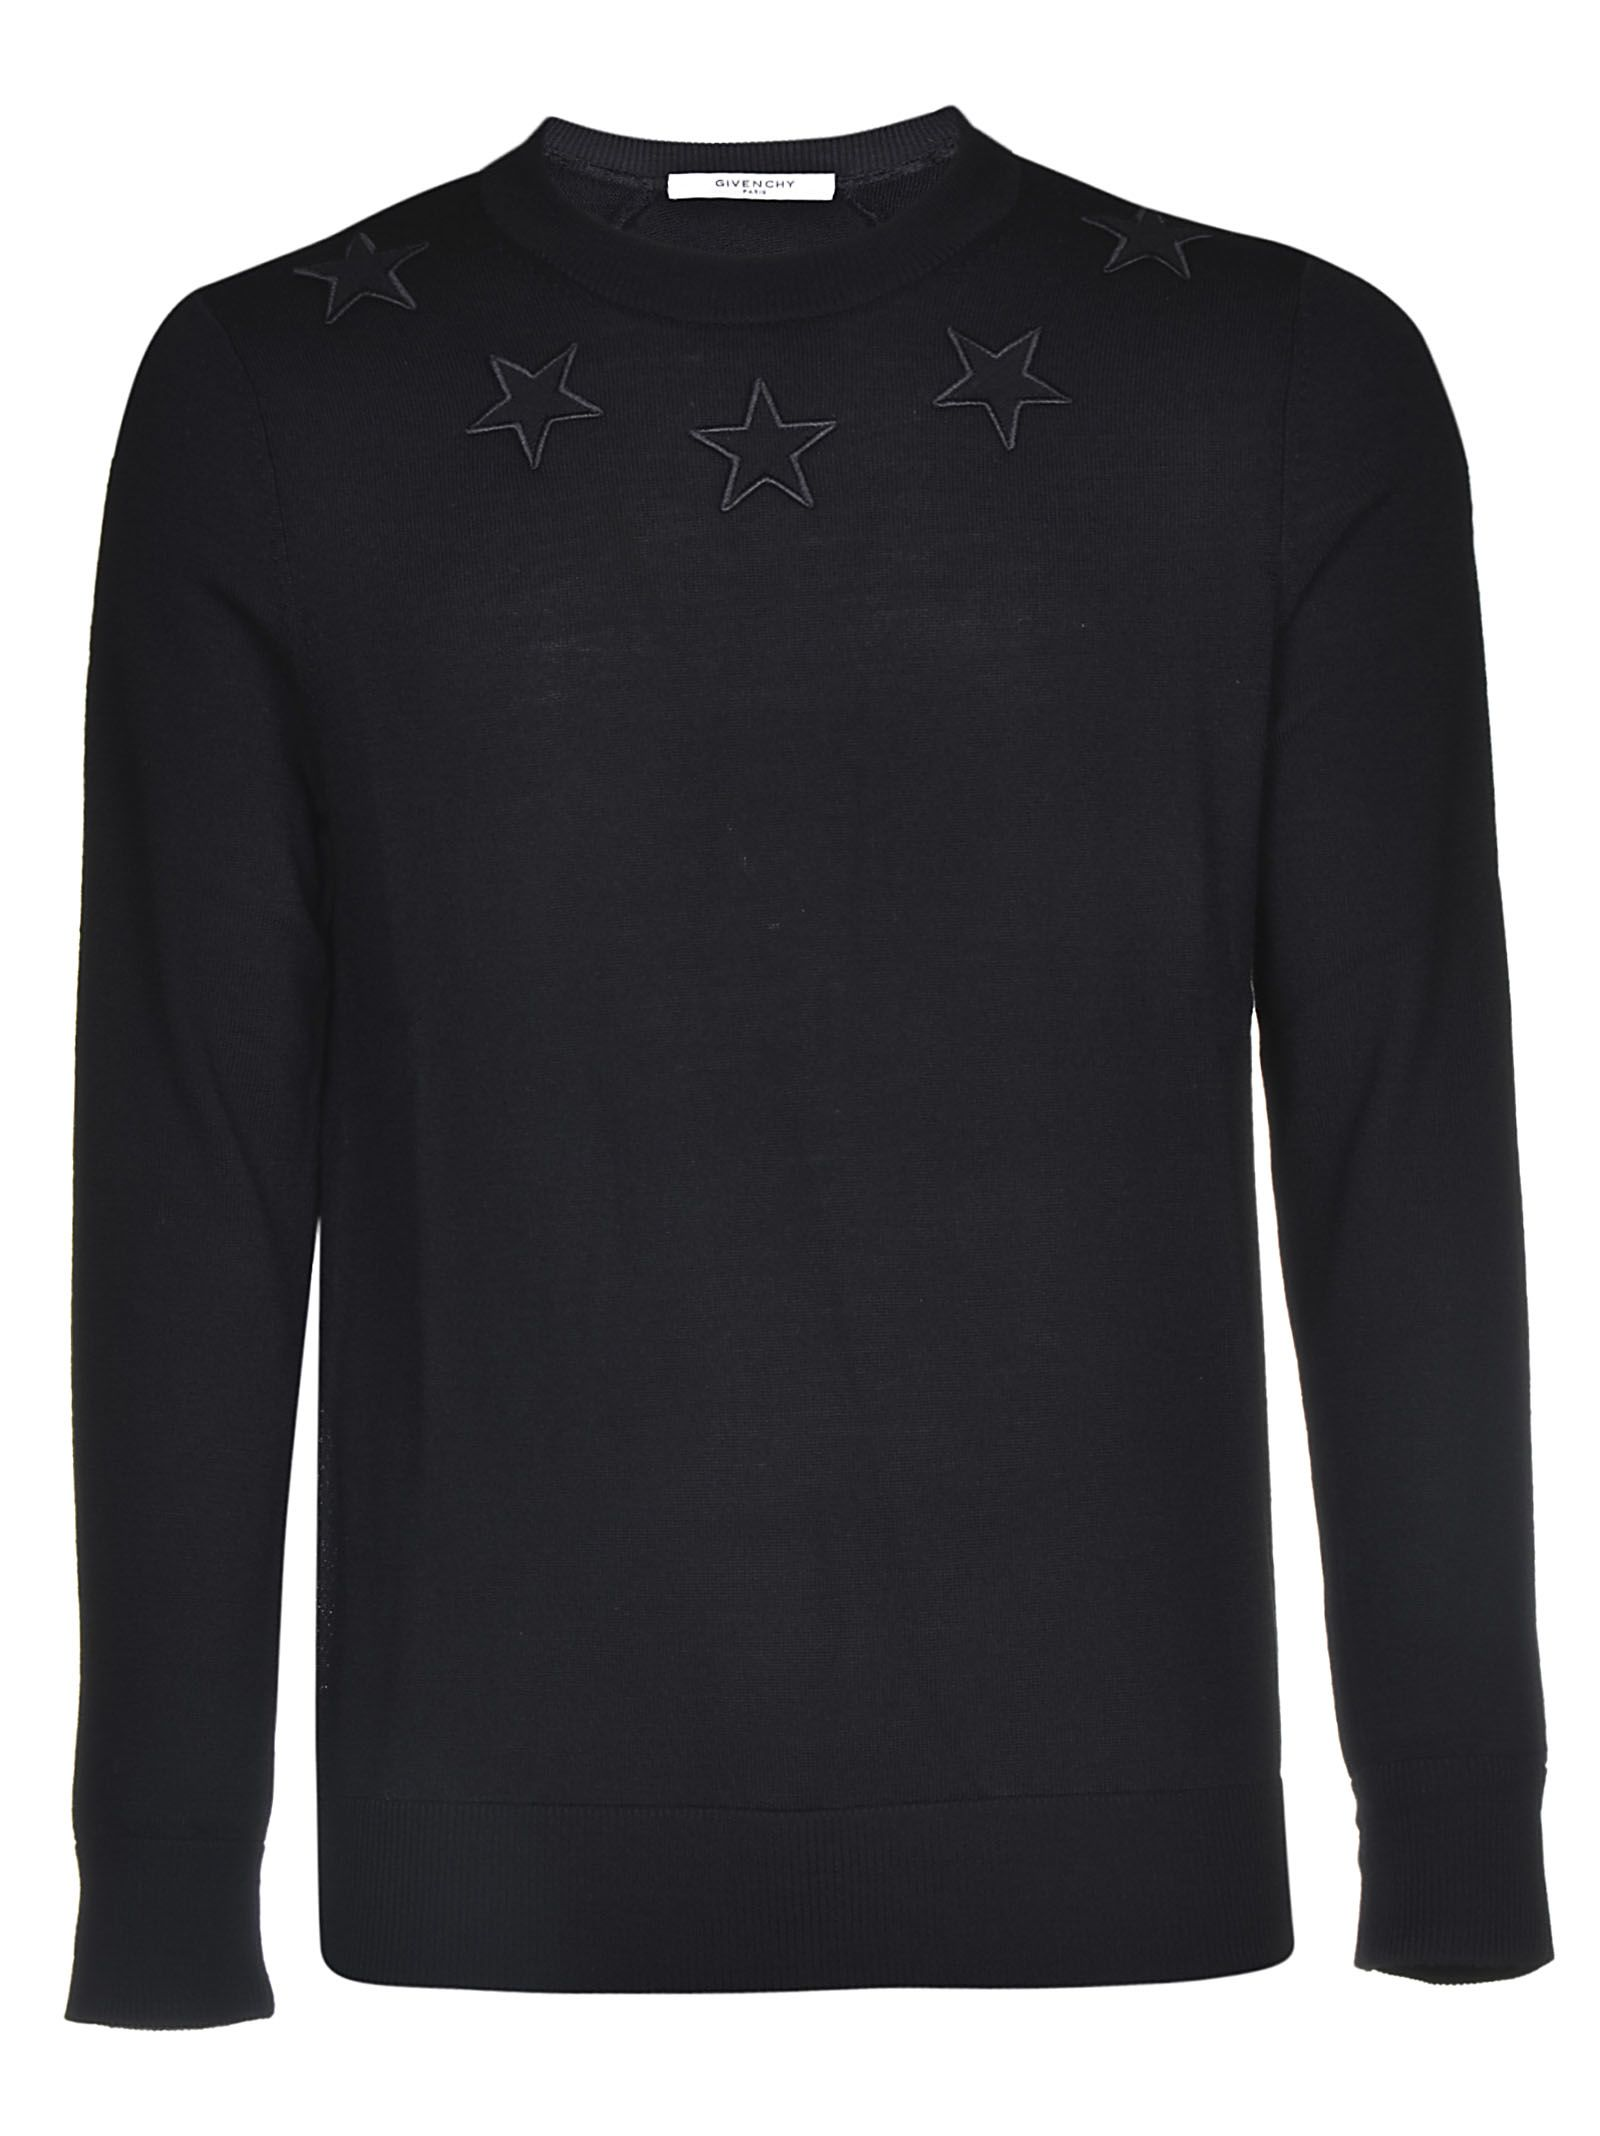 Givenchy Star Embroidery Sweatshirt